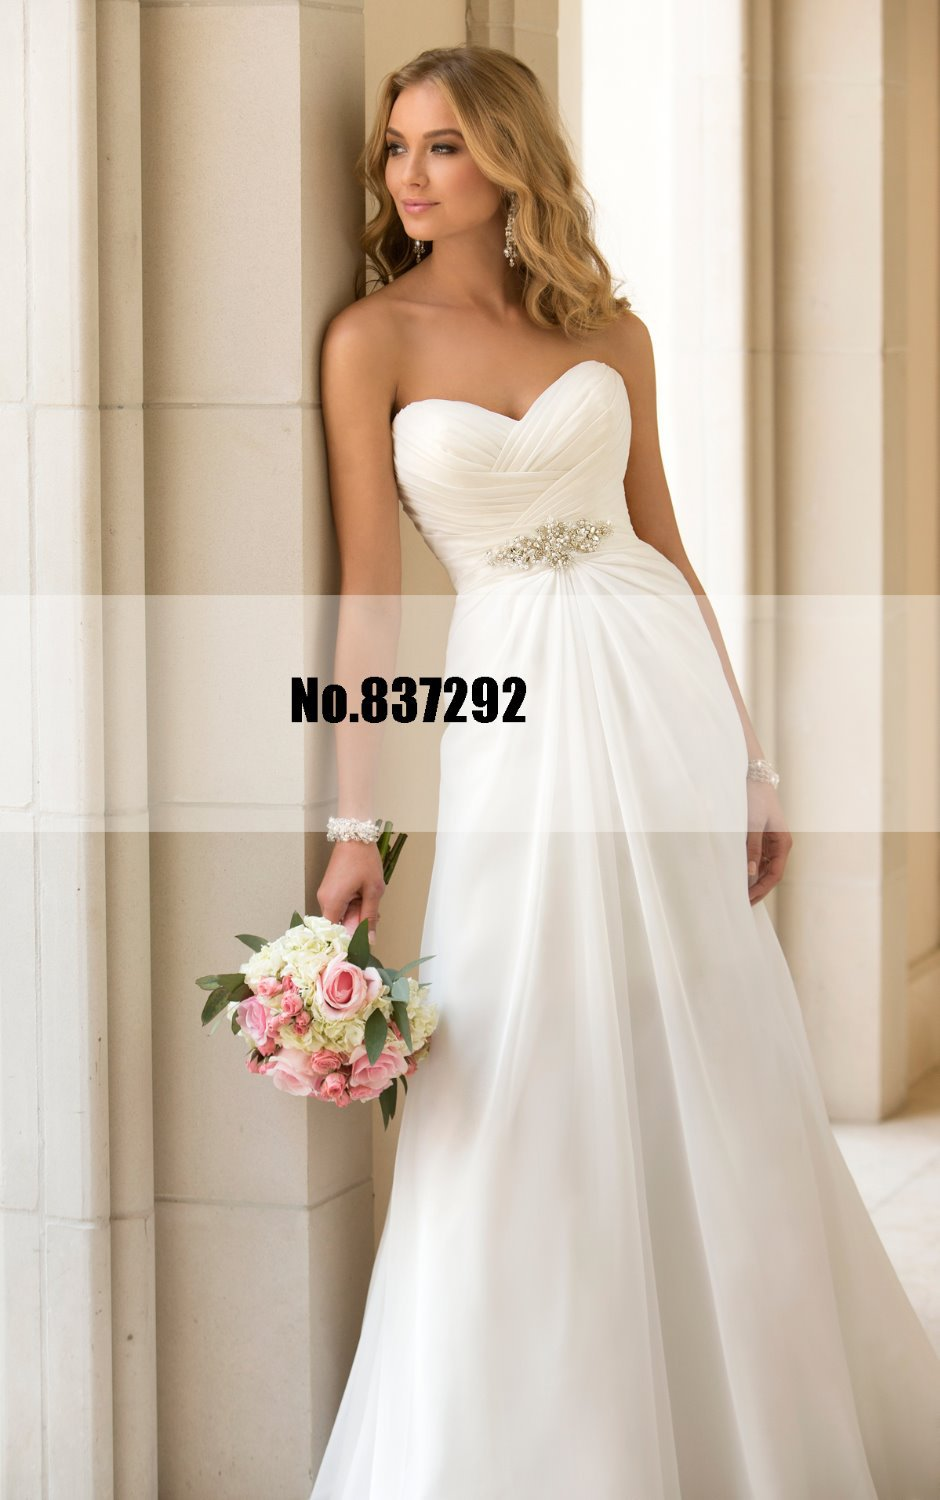 Cheap Plus Size Wedding Dresses Under 50 - Overlay Wedding Dresses